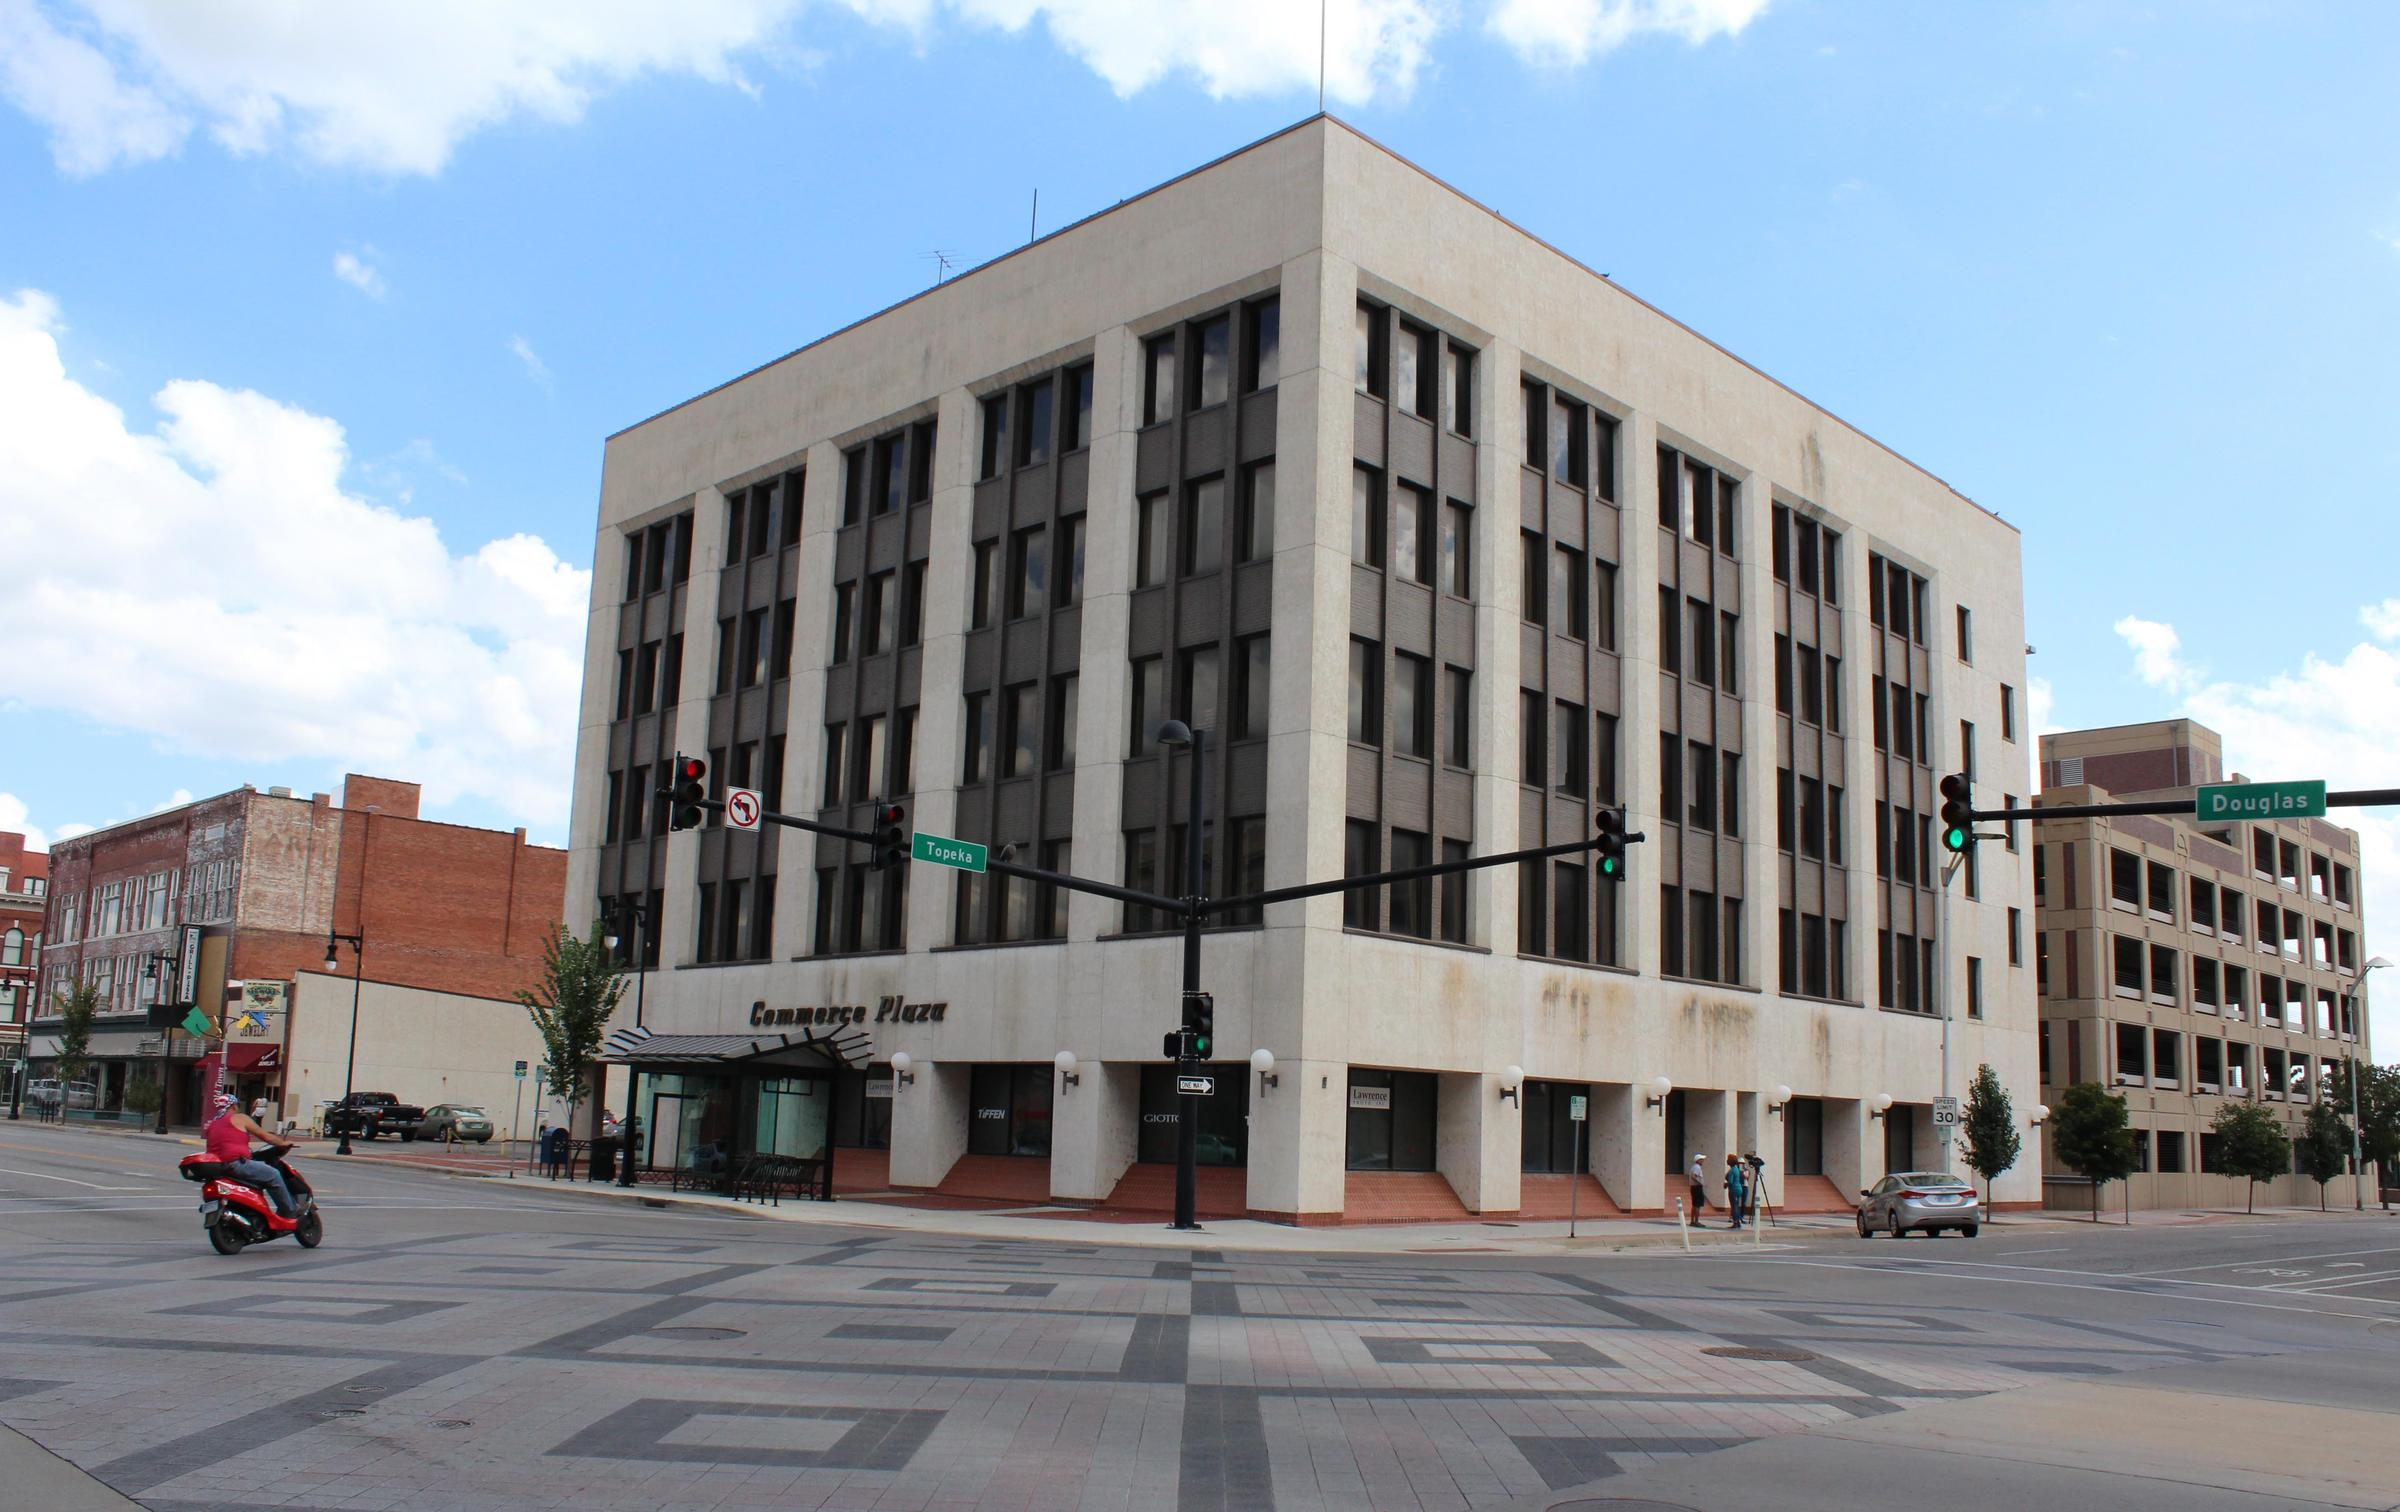 Commerce Plaza At Douglas And Topeka Will Be Renovated Into A New Hilton Garden Inn